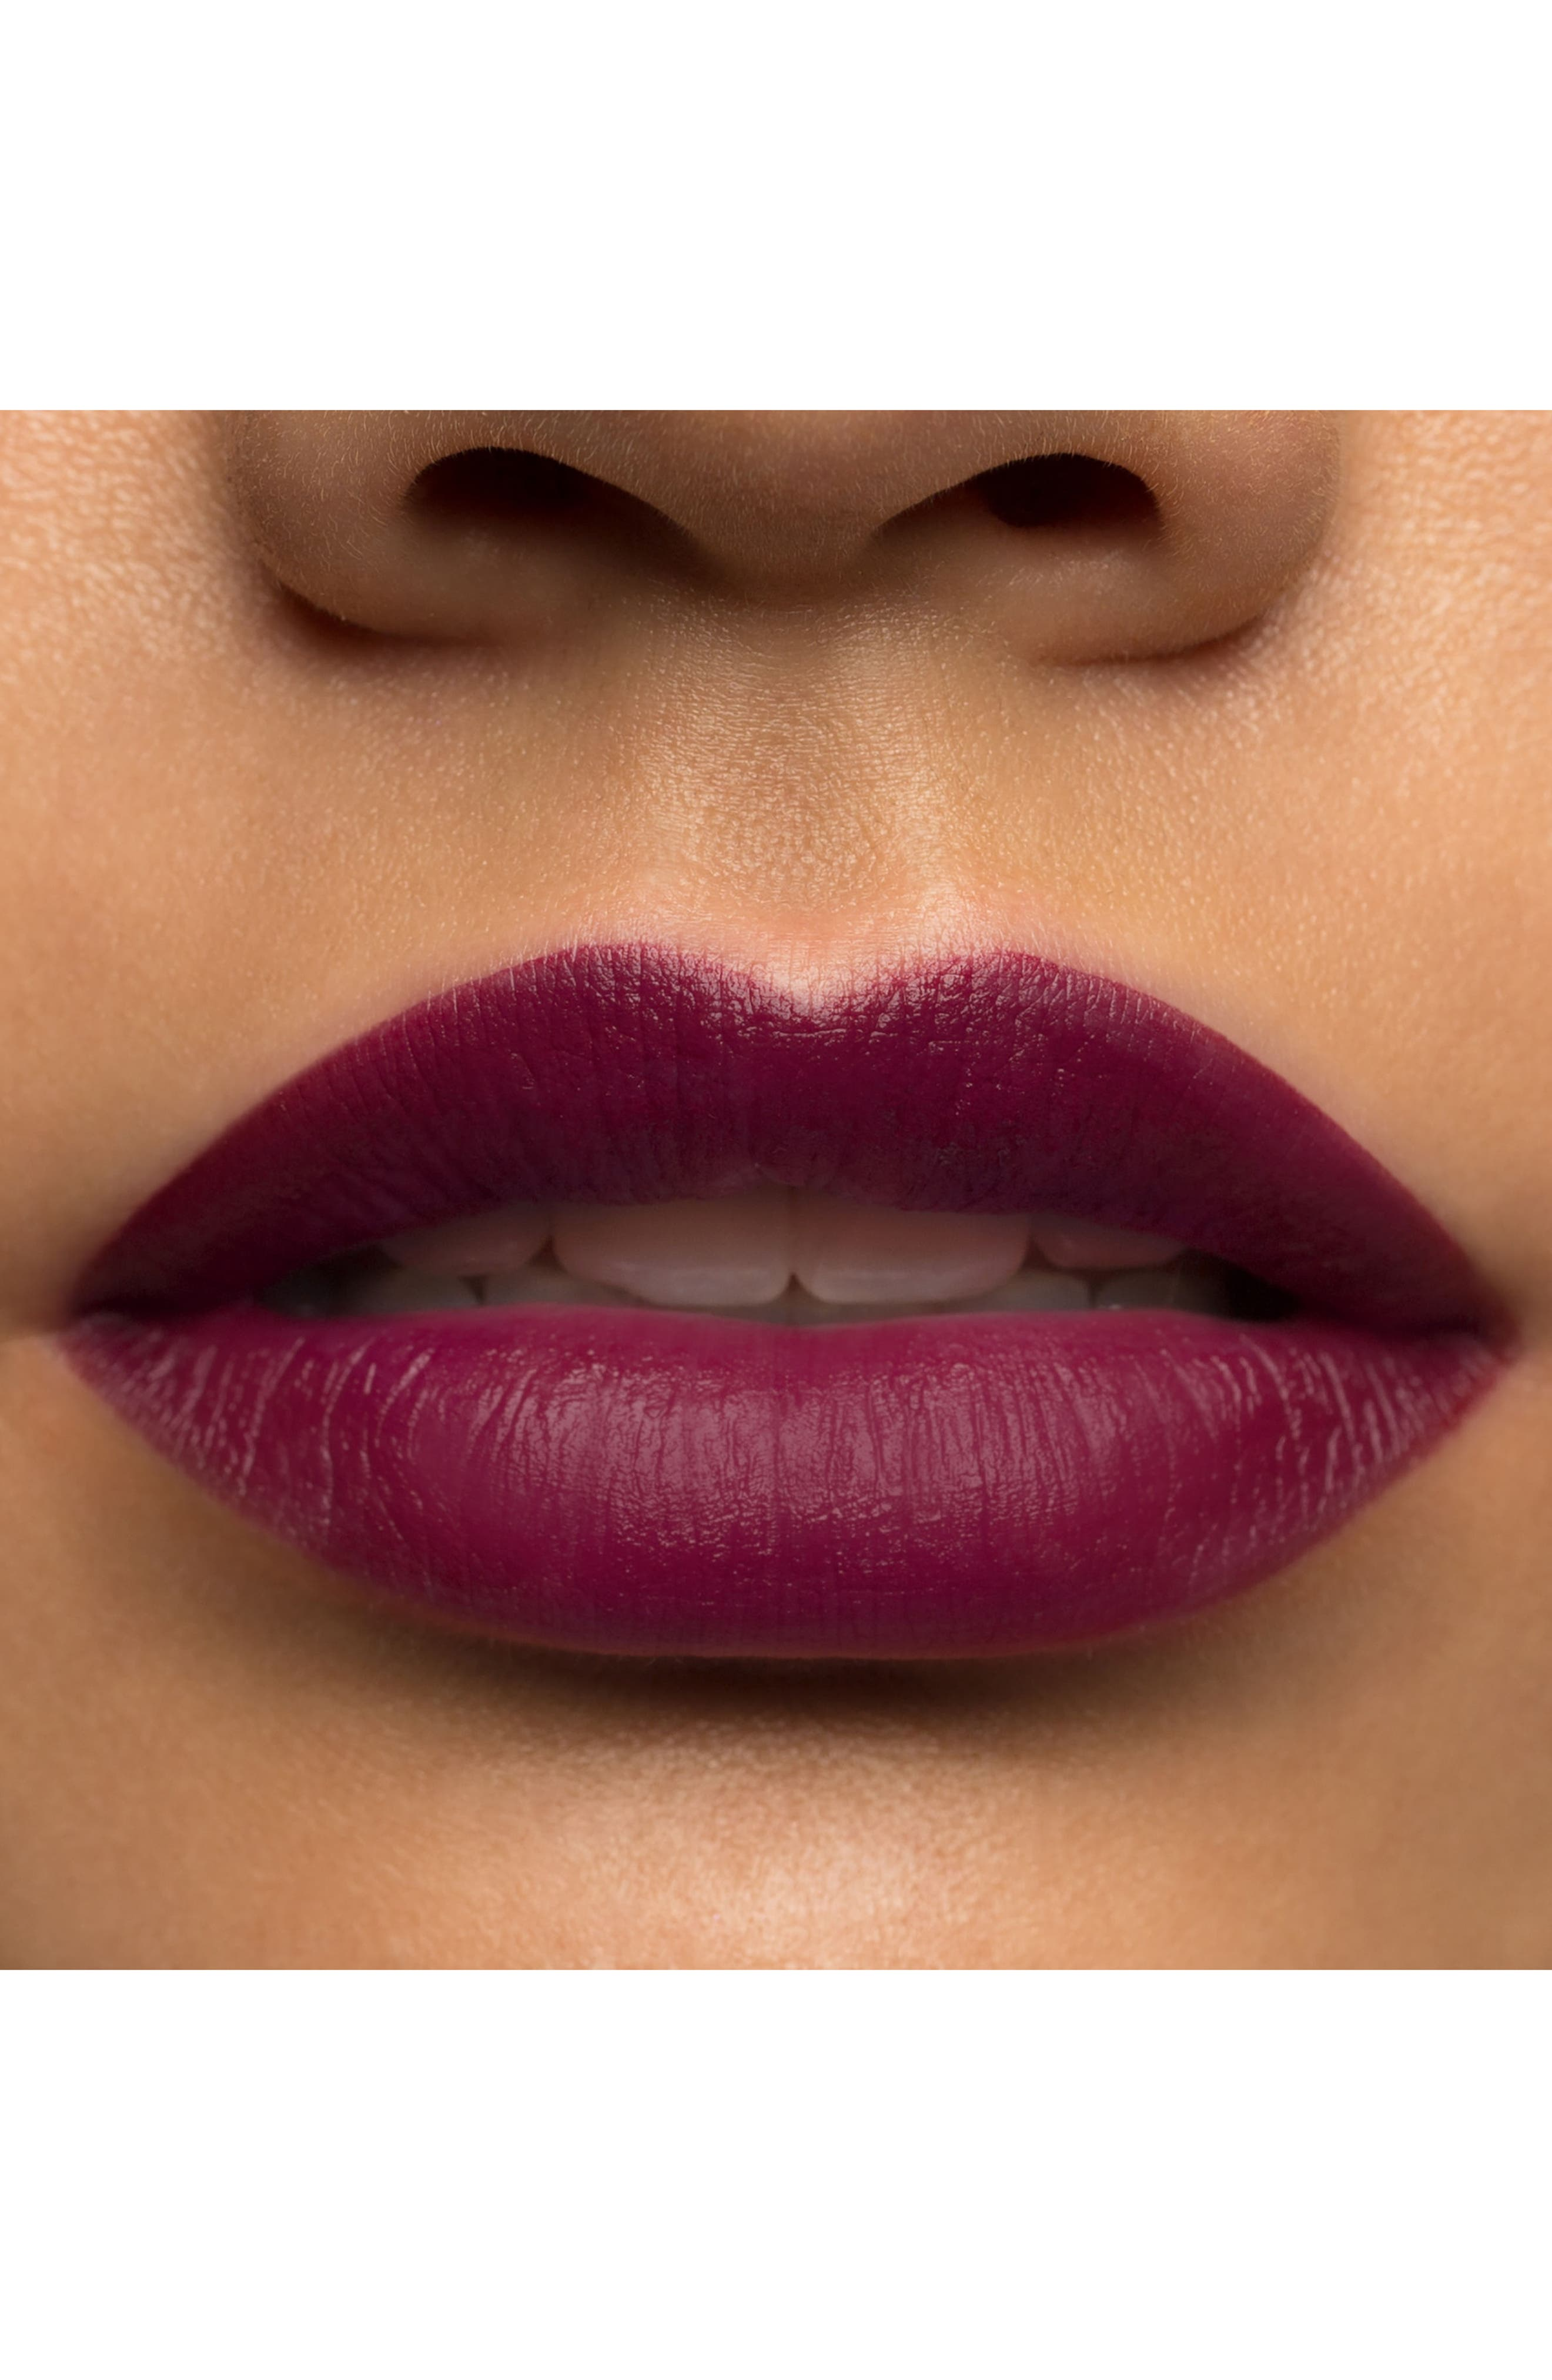 Julep<sup>™</sup> It's Whipped Matte Lip Mousse,                             Alternate thumbnail 2, color,                             PUCKER UP